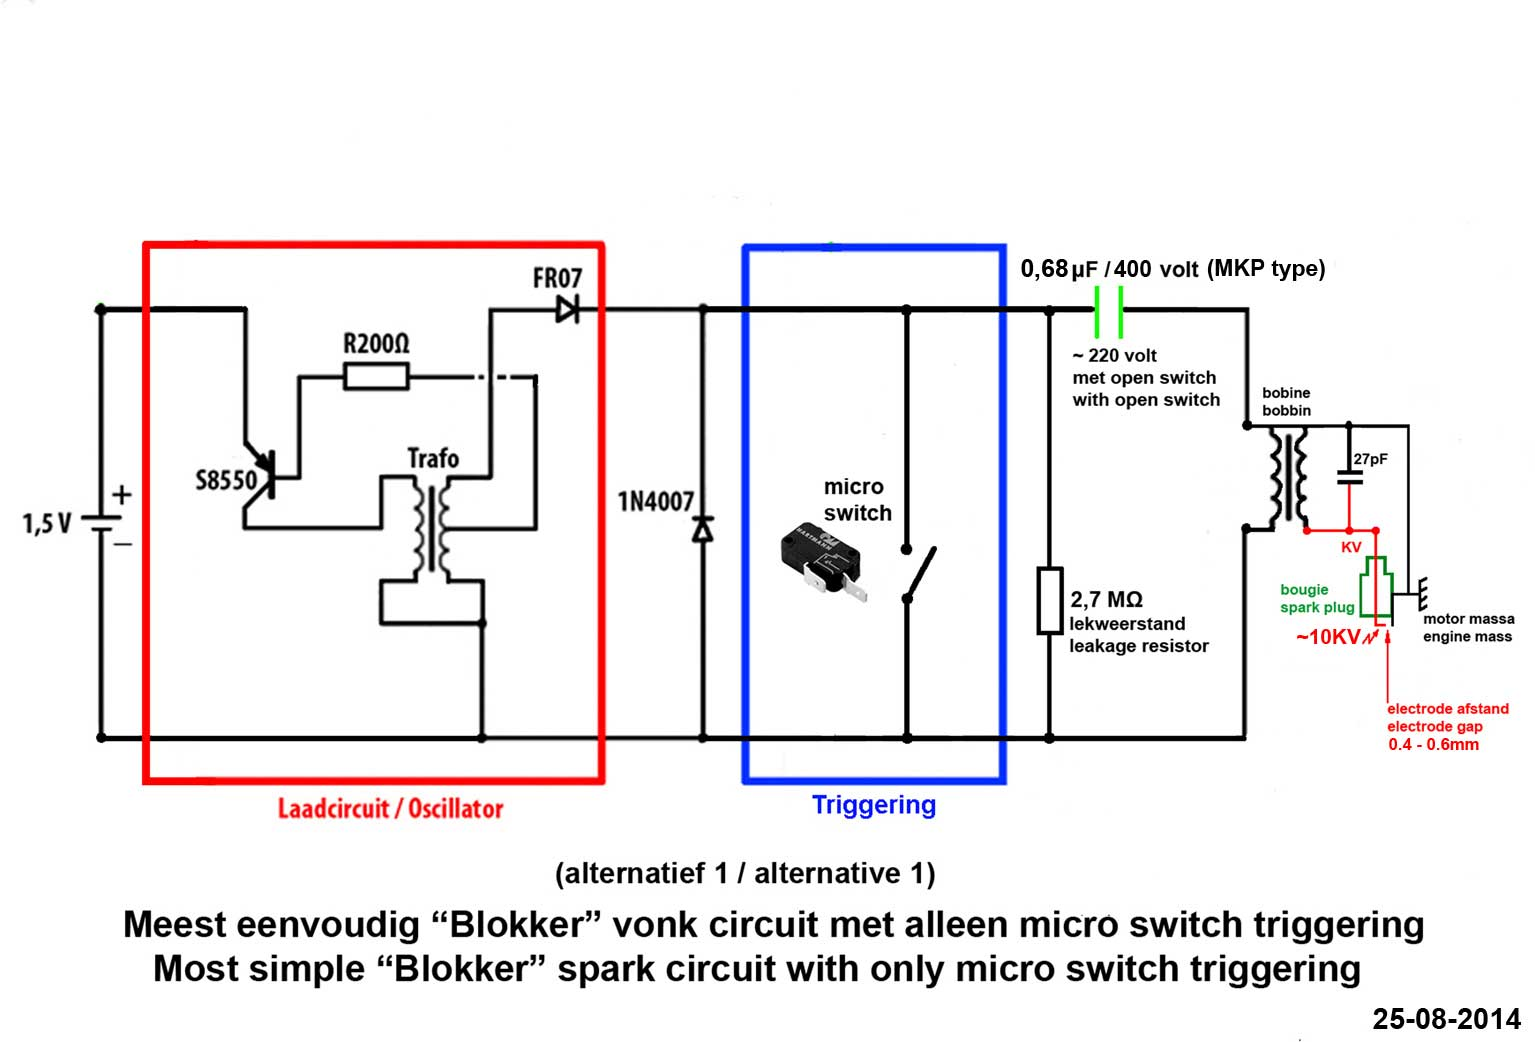 4 channel wiring diagram bunsen burner labeled an error occurred blokker schakeling microswi jpg